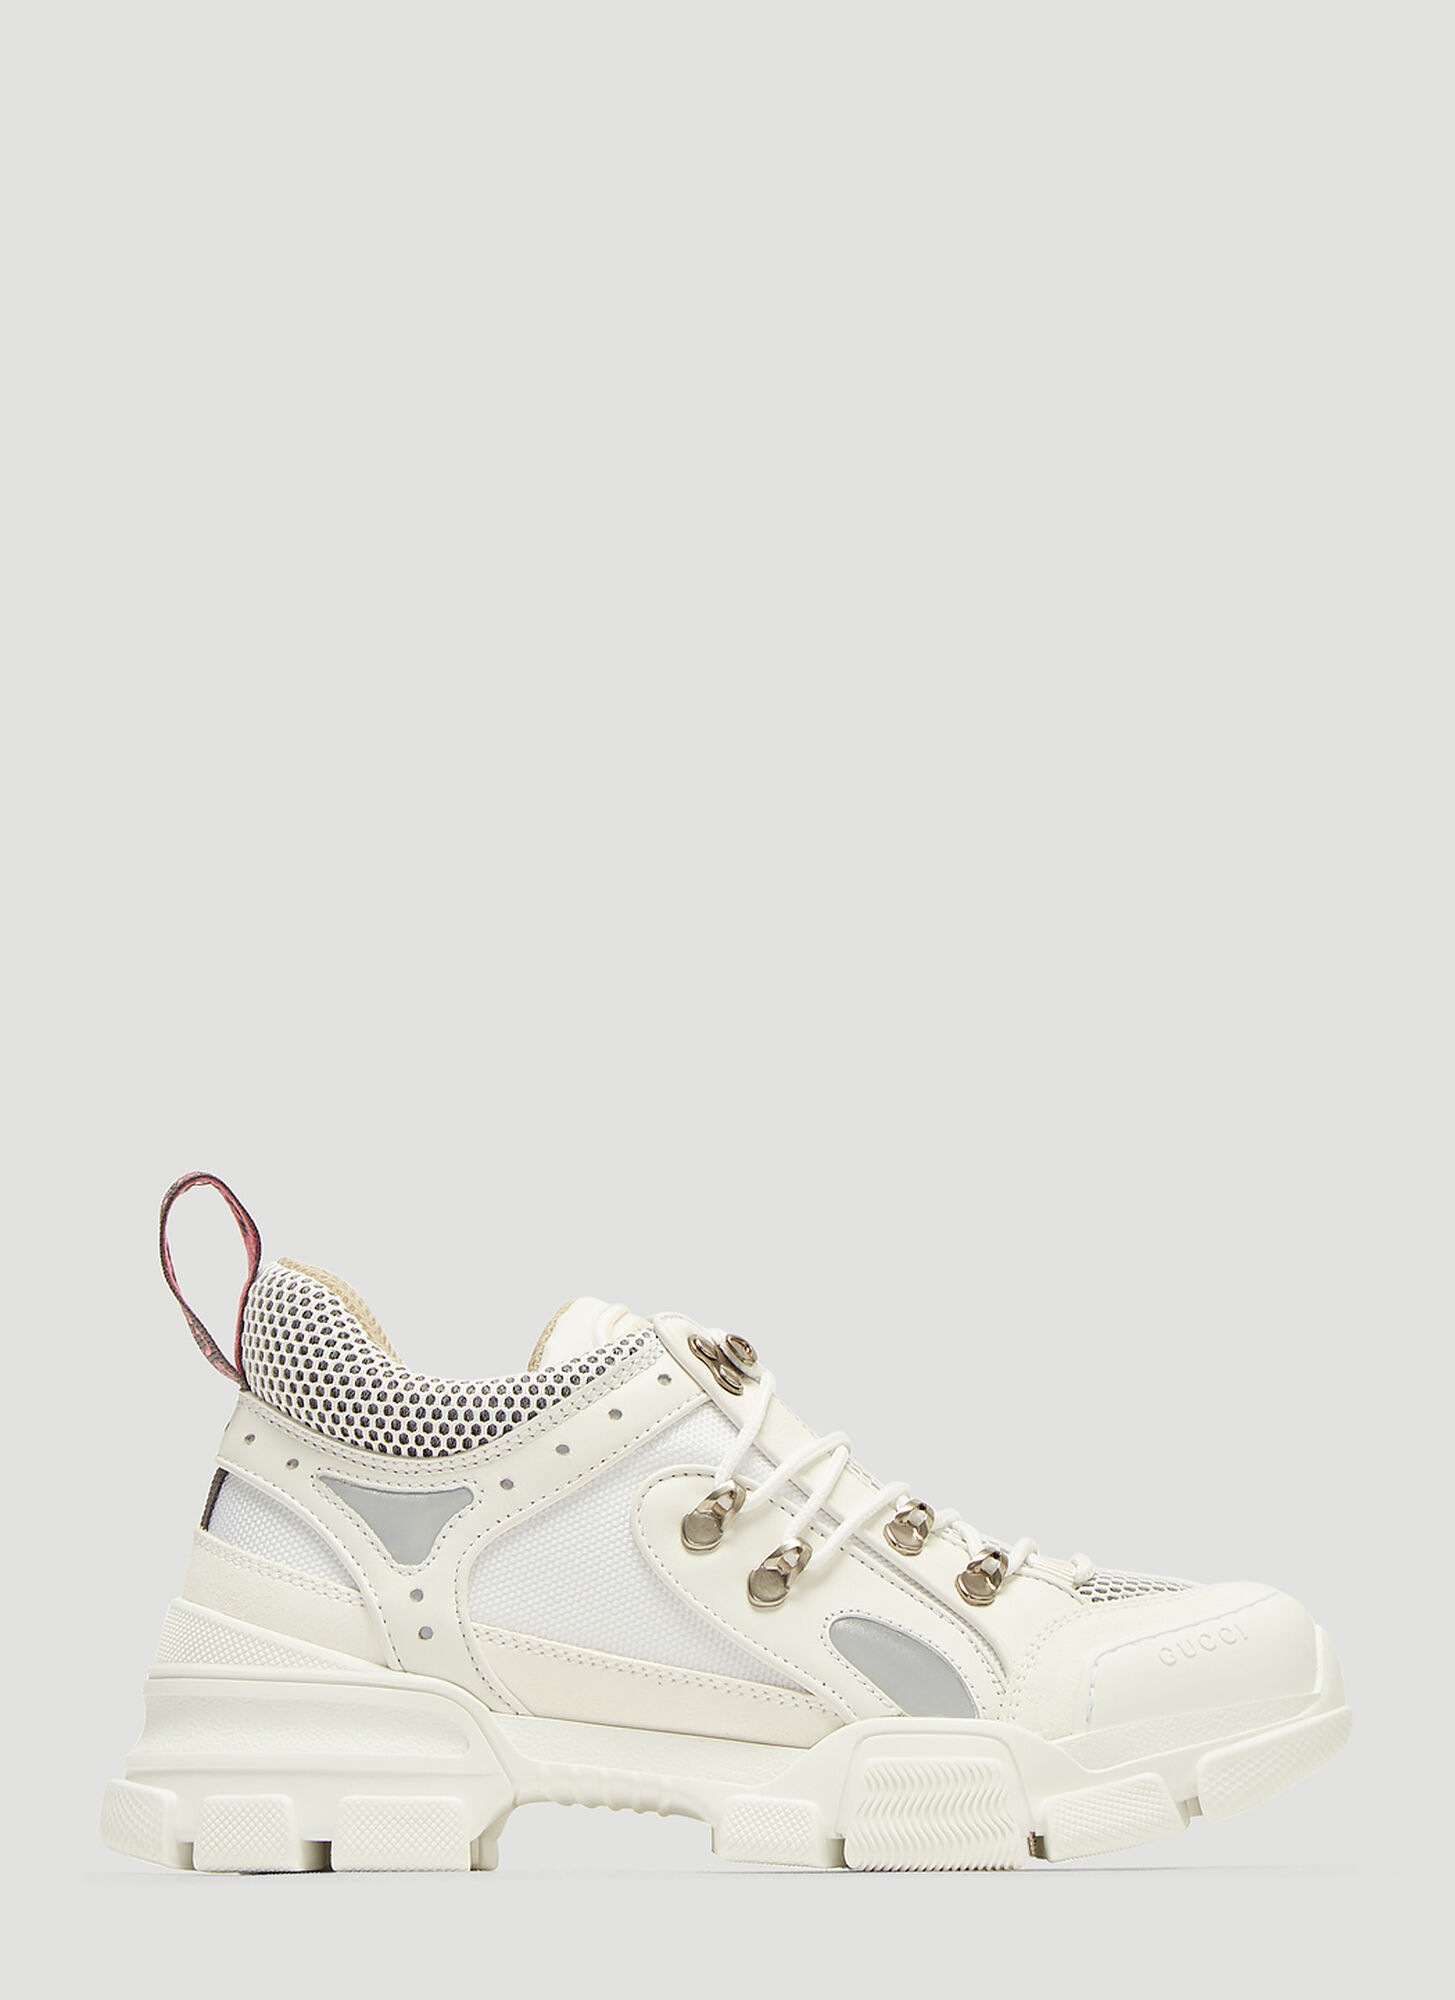 Gucci Flashtrek GG High-Top Sneaker in White